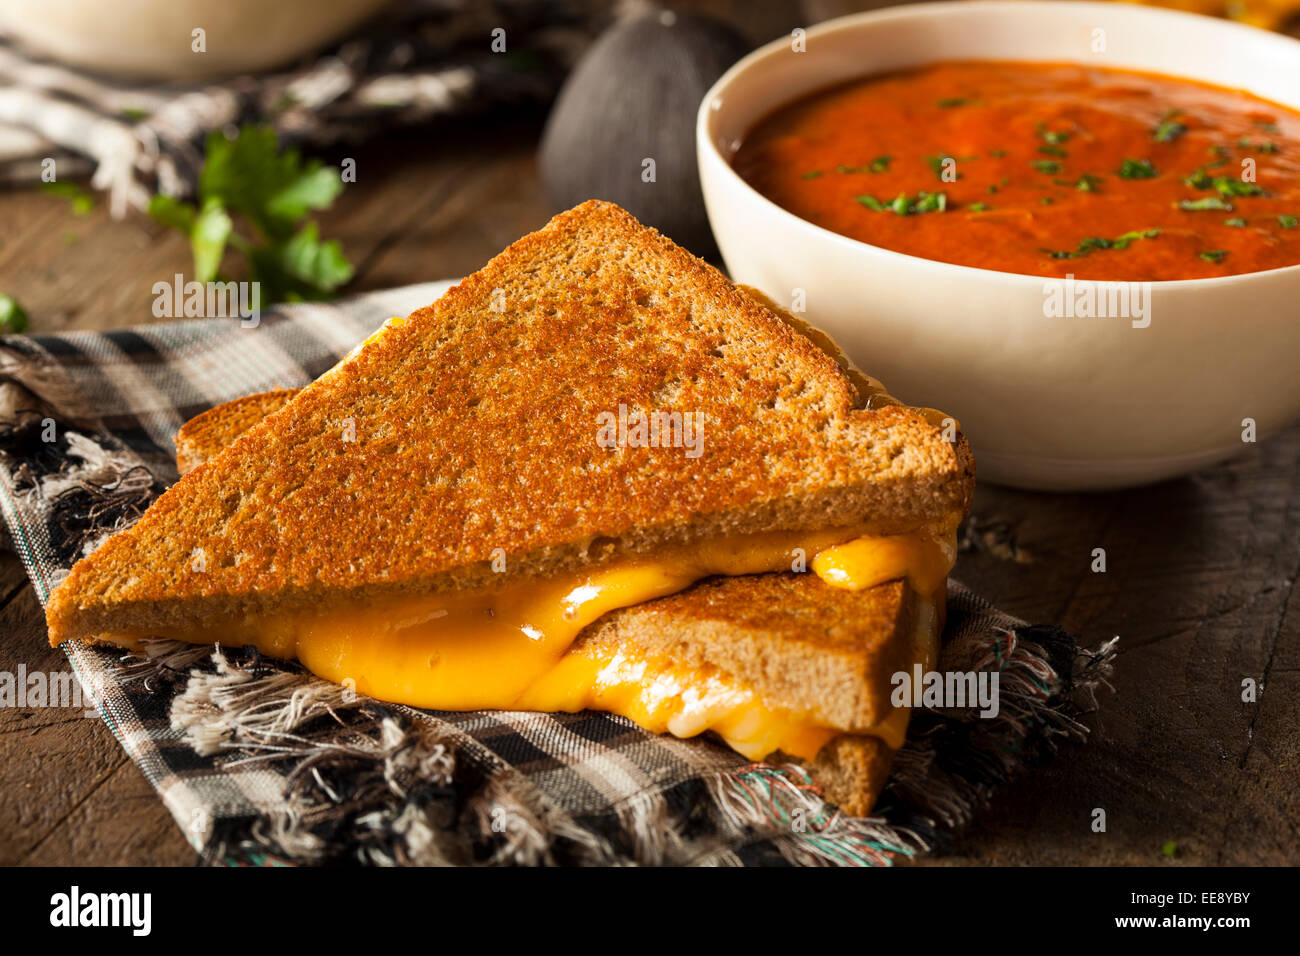 Homemade Grilled Cheese with Tomato Soup for Lunch Stock Photo